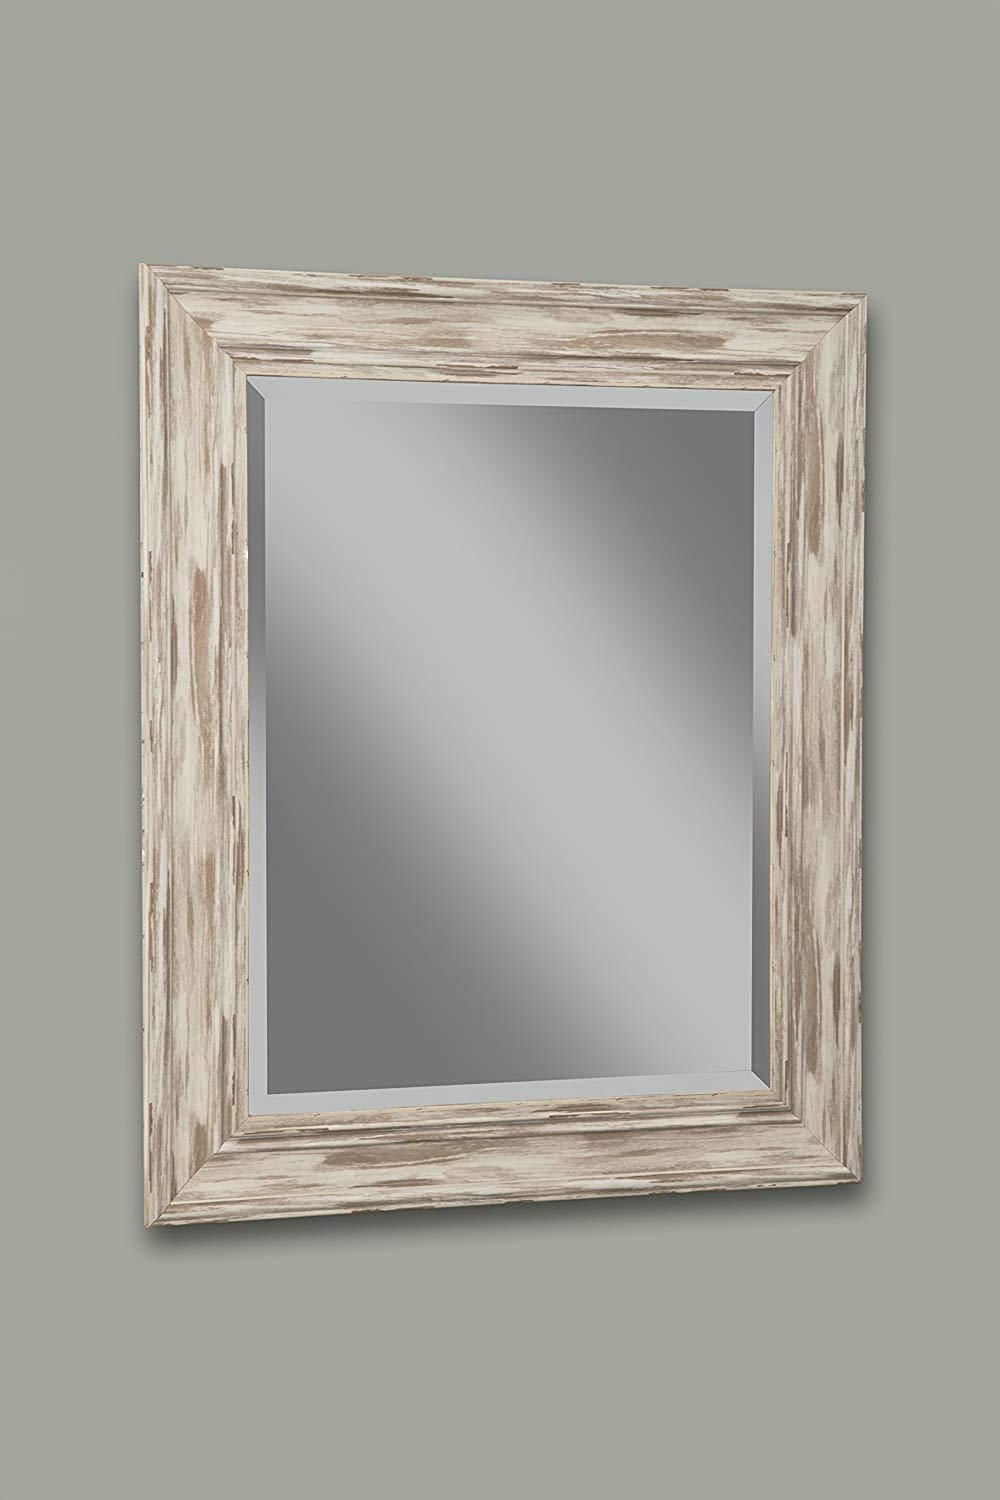 2020 Bartolo Accent Mirrors Regarding Polystyrene Framed Wall Mirror With Sharp Edges, Antique White In (View 1 of 20)